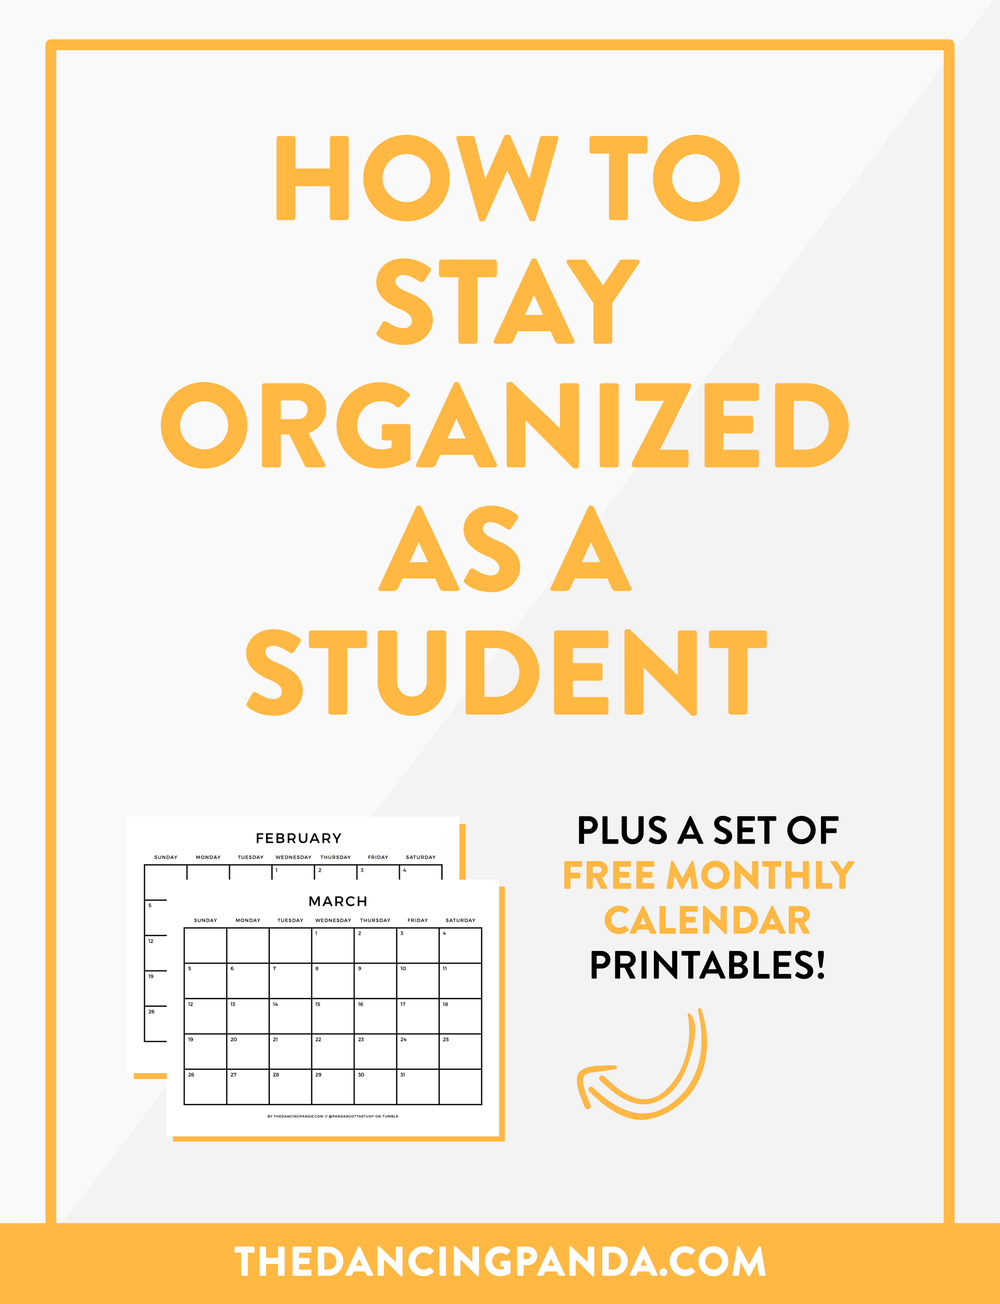 Learn how to become a more organized student! apps, systems and methods for organization as a student. >> thedancingpanda.com